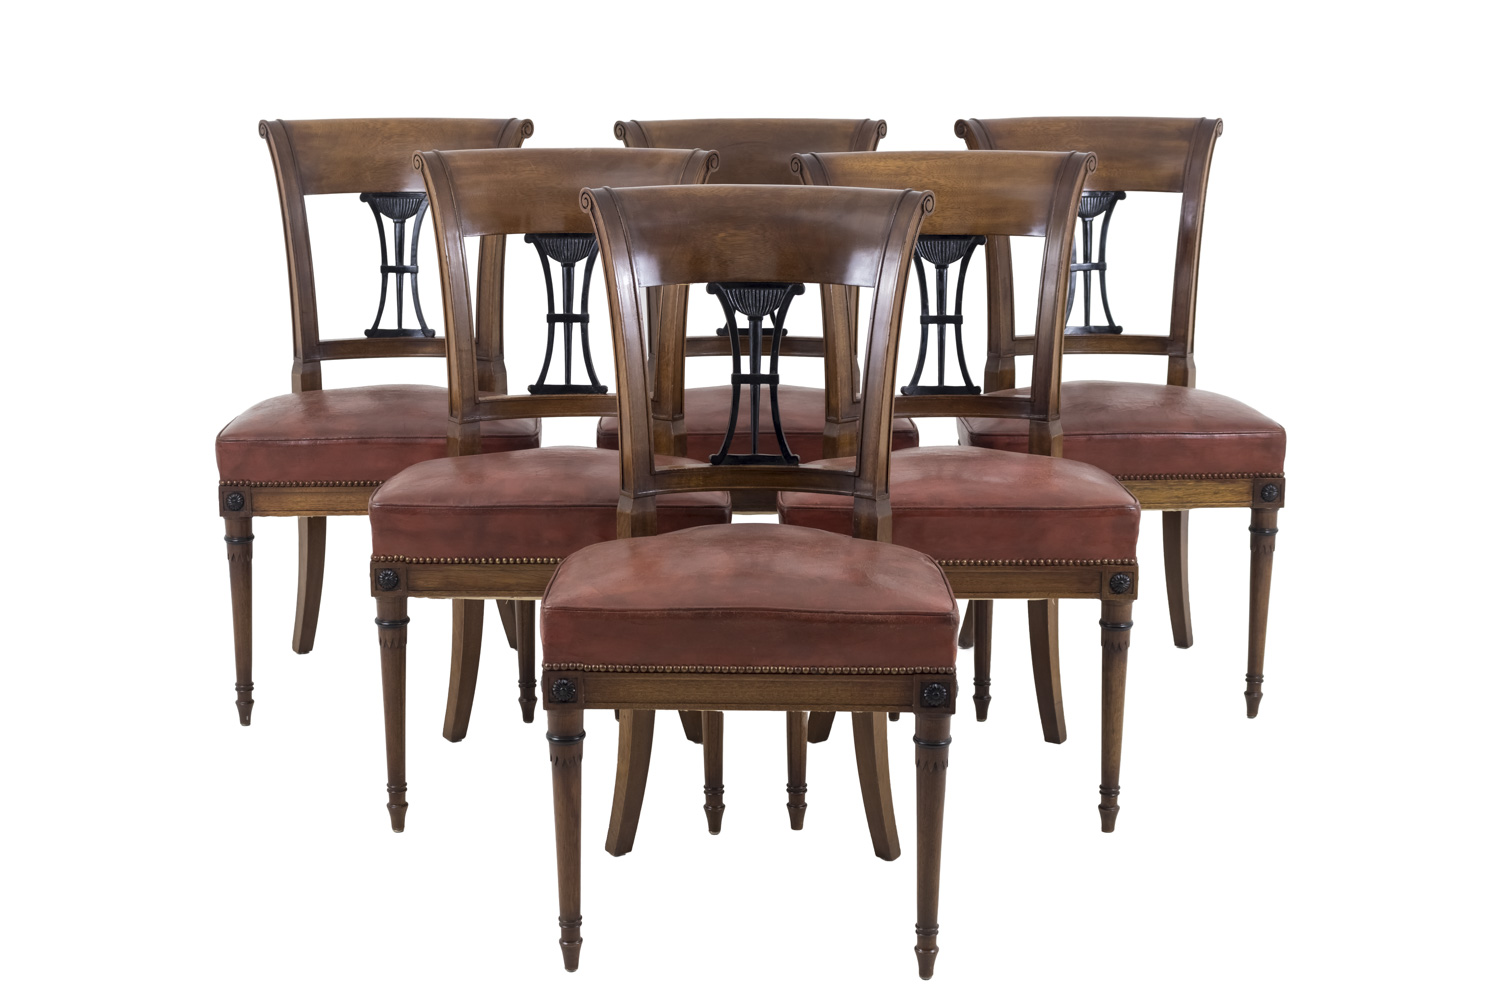 Fantastic Set Of 6 Directoire Style Chairs In Mahogany Early 20Th Century Pabps2019 Chair Design Images Pabps2019Com